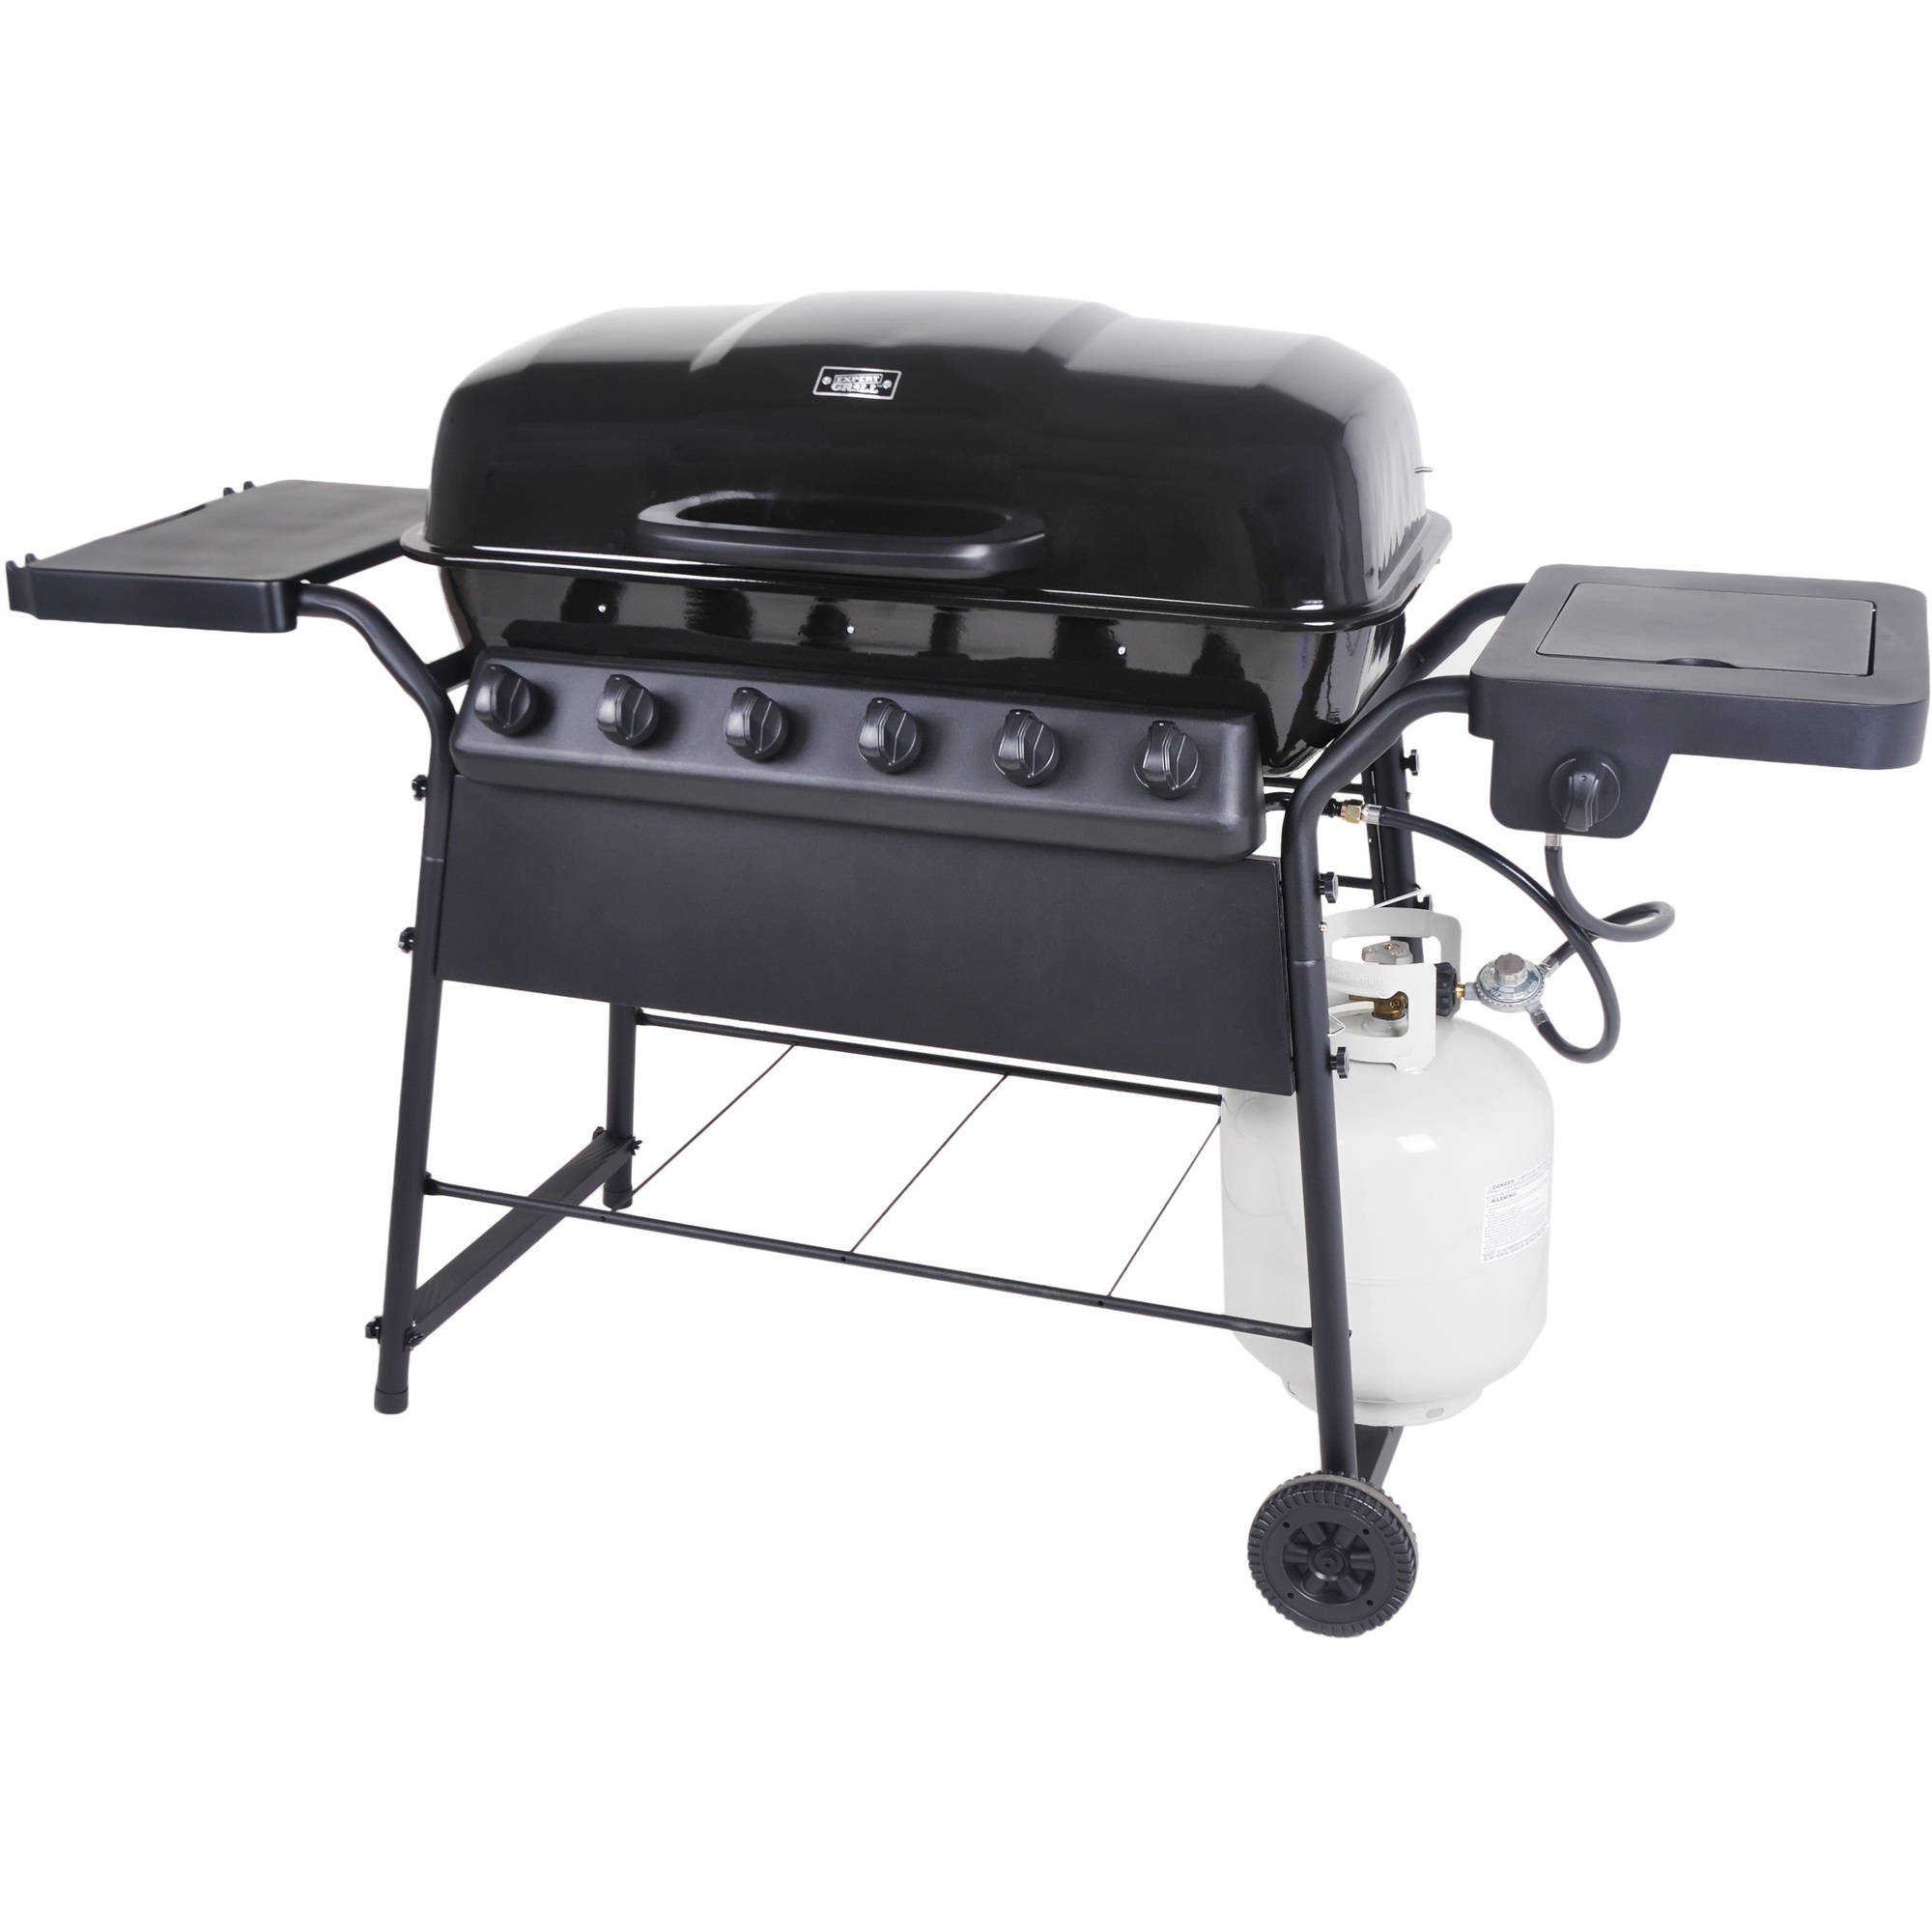 6 burner gas grill w side burner 58 000 btu patio for Gasgrill fur outdoor kuche